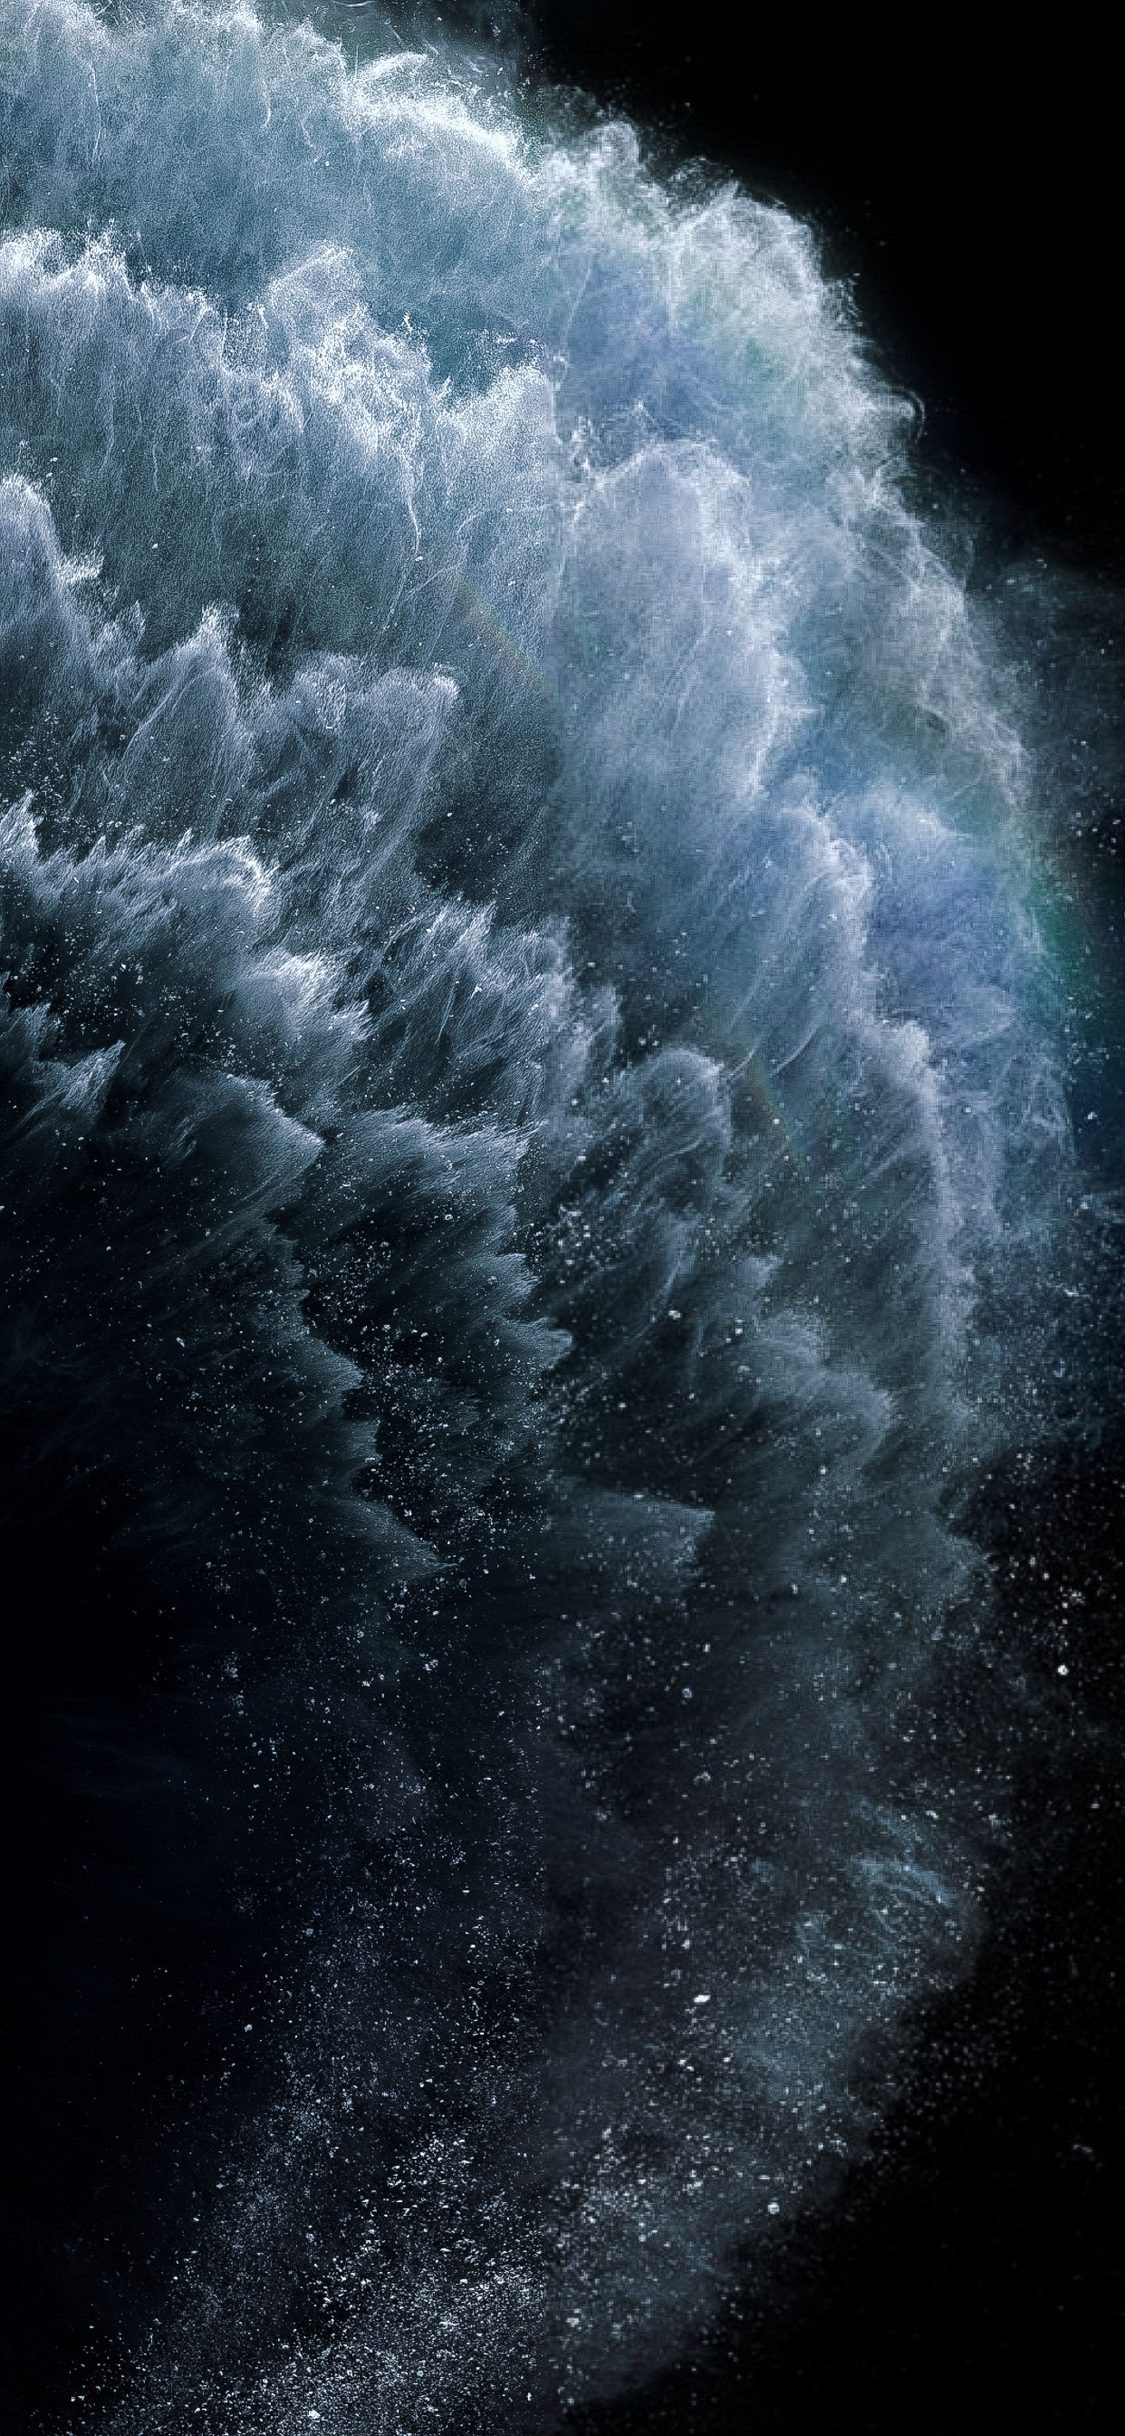 Abstract Water Iphone 11 Pro Wallpaper